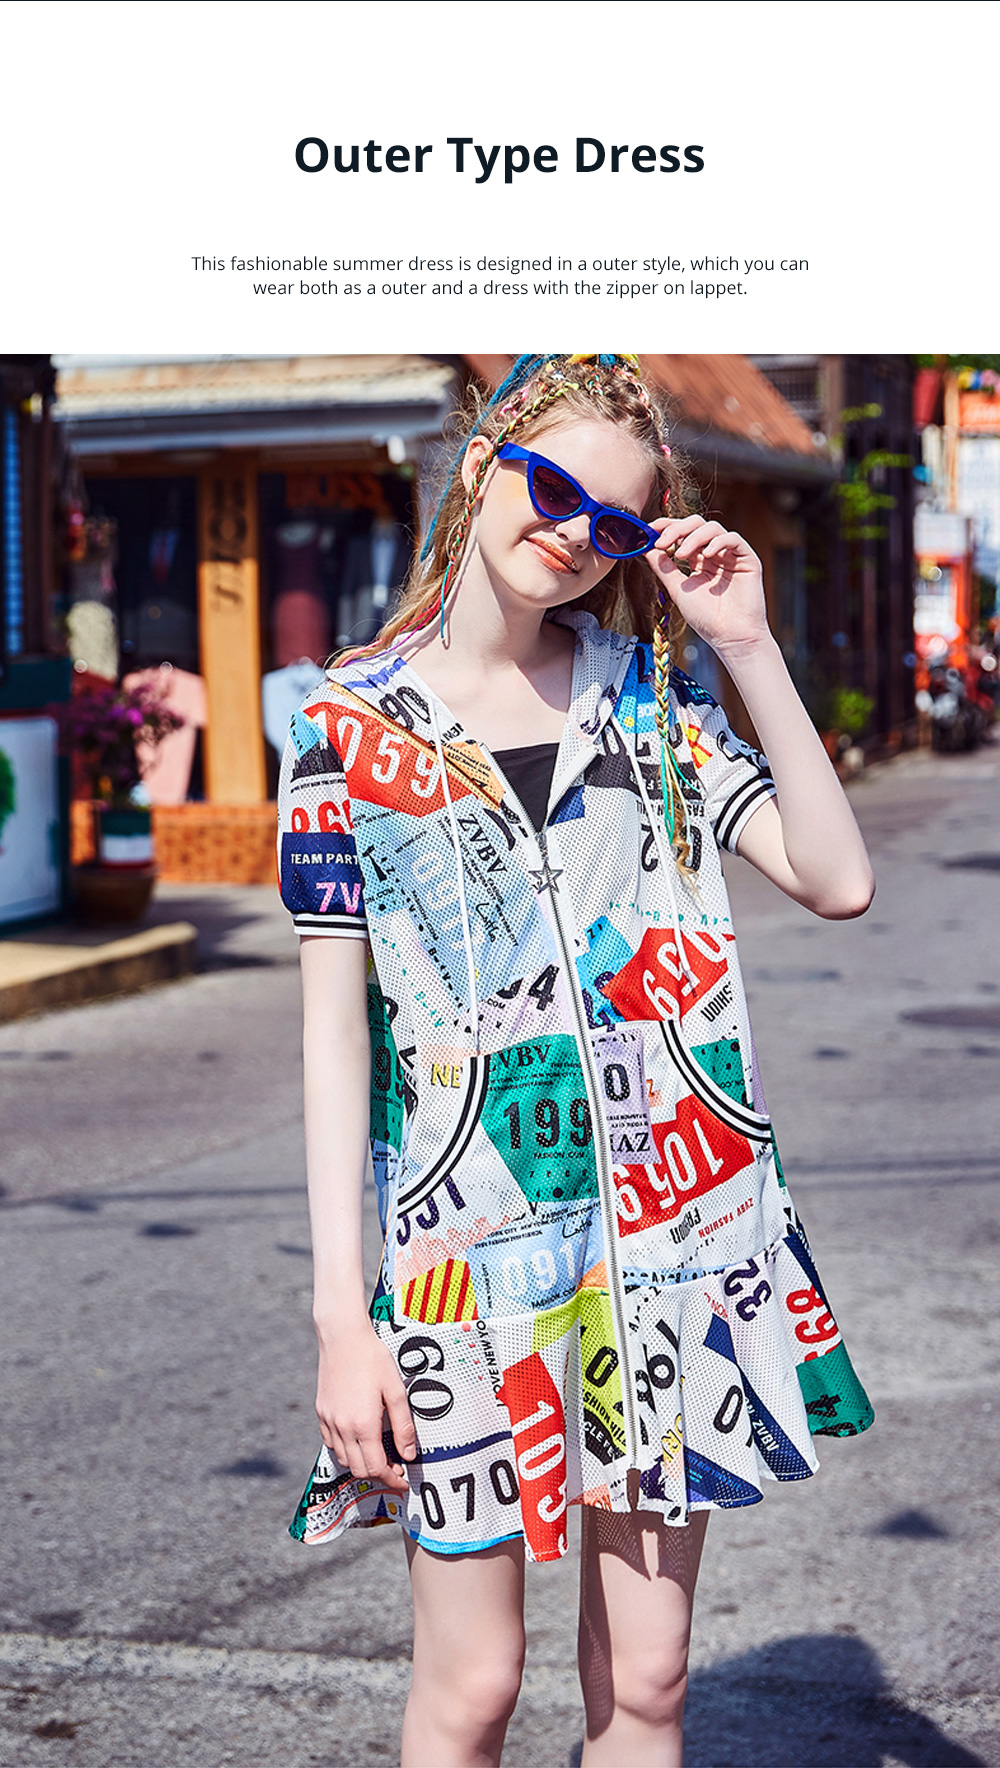 2020 Latest European Summer Leisure Style Zipper One-piece Dress Unique Printed Baggy Style Popular Breathable Dress For Girls 1